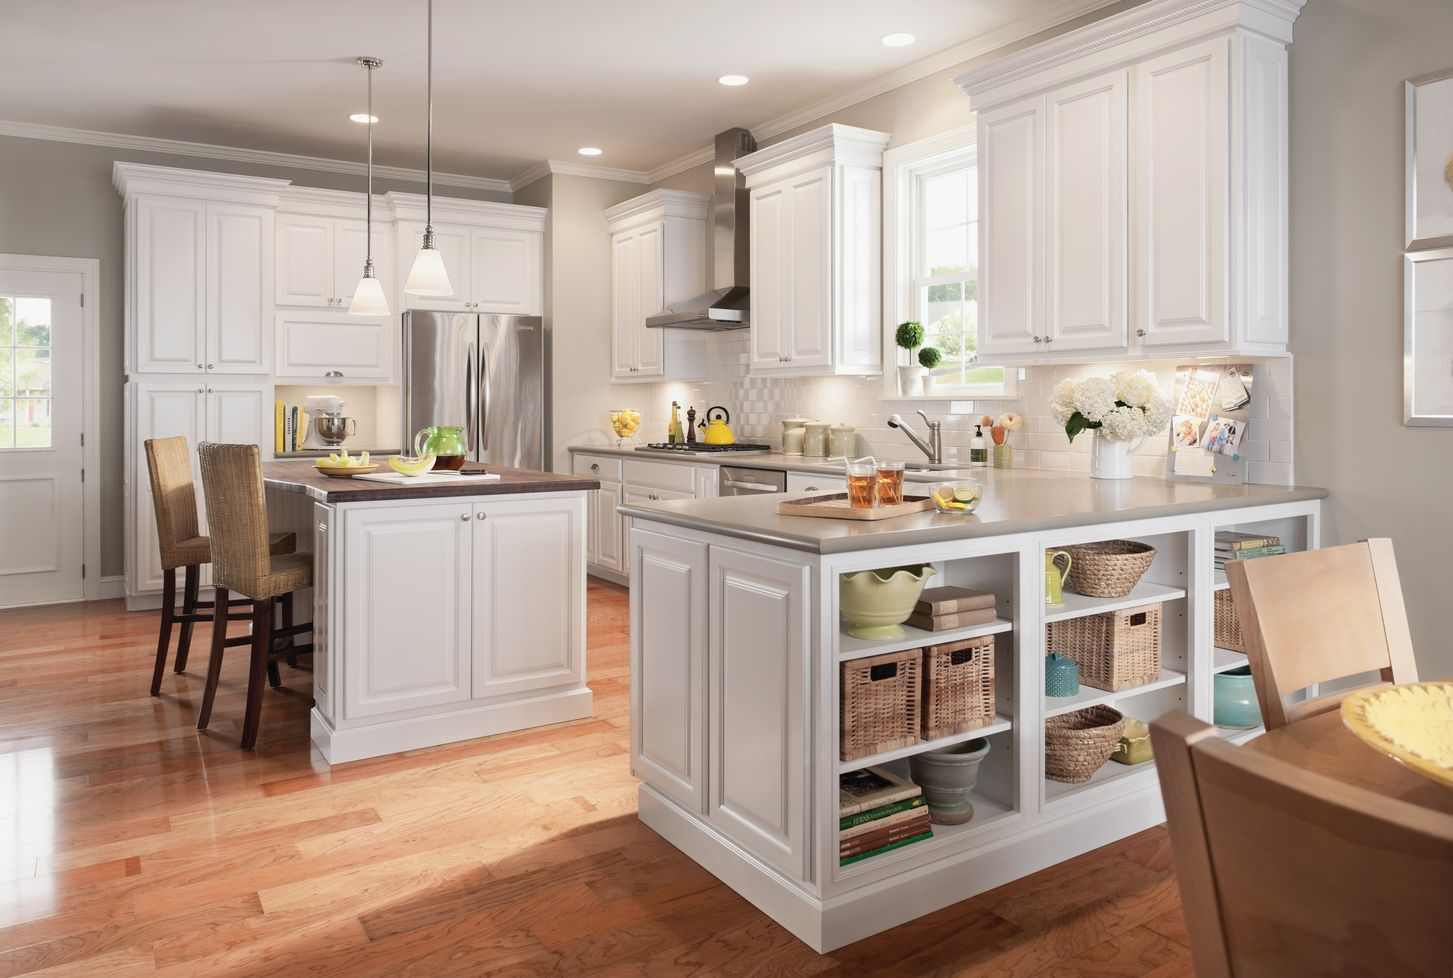 Best Cabinetry From The Newport Collection By American Woodmark 640 x 480